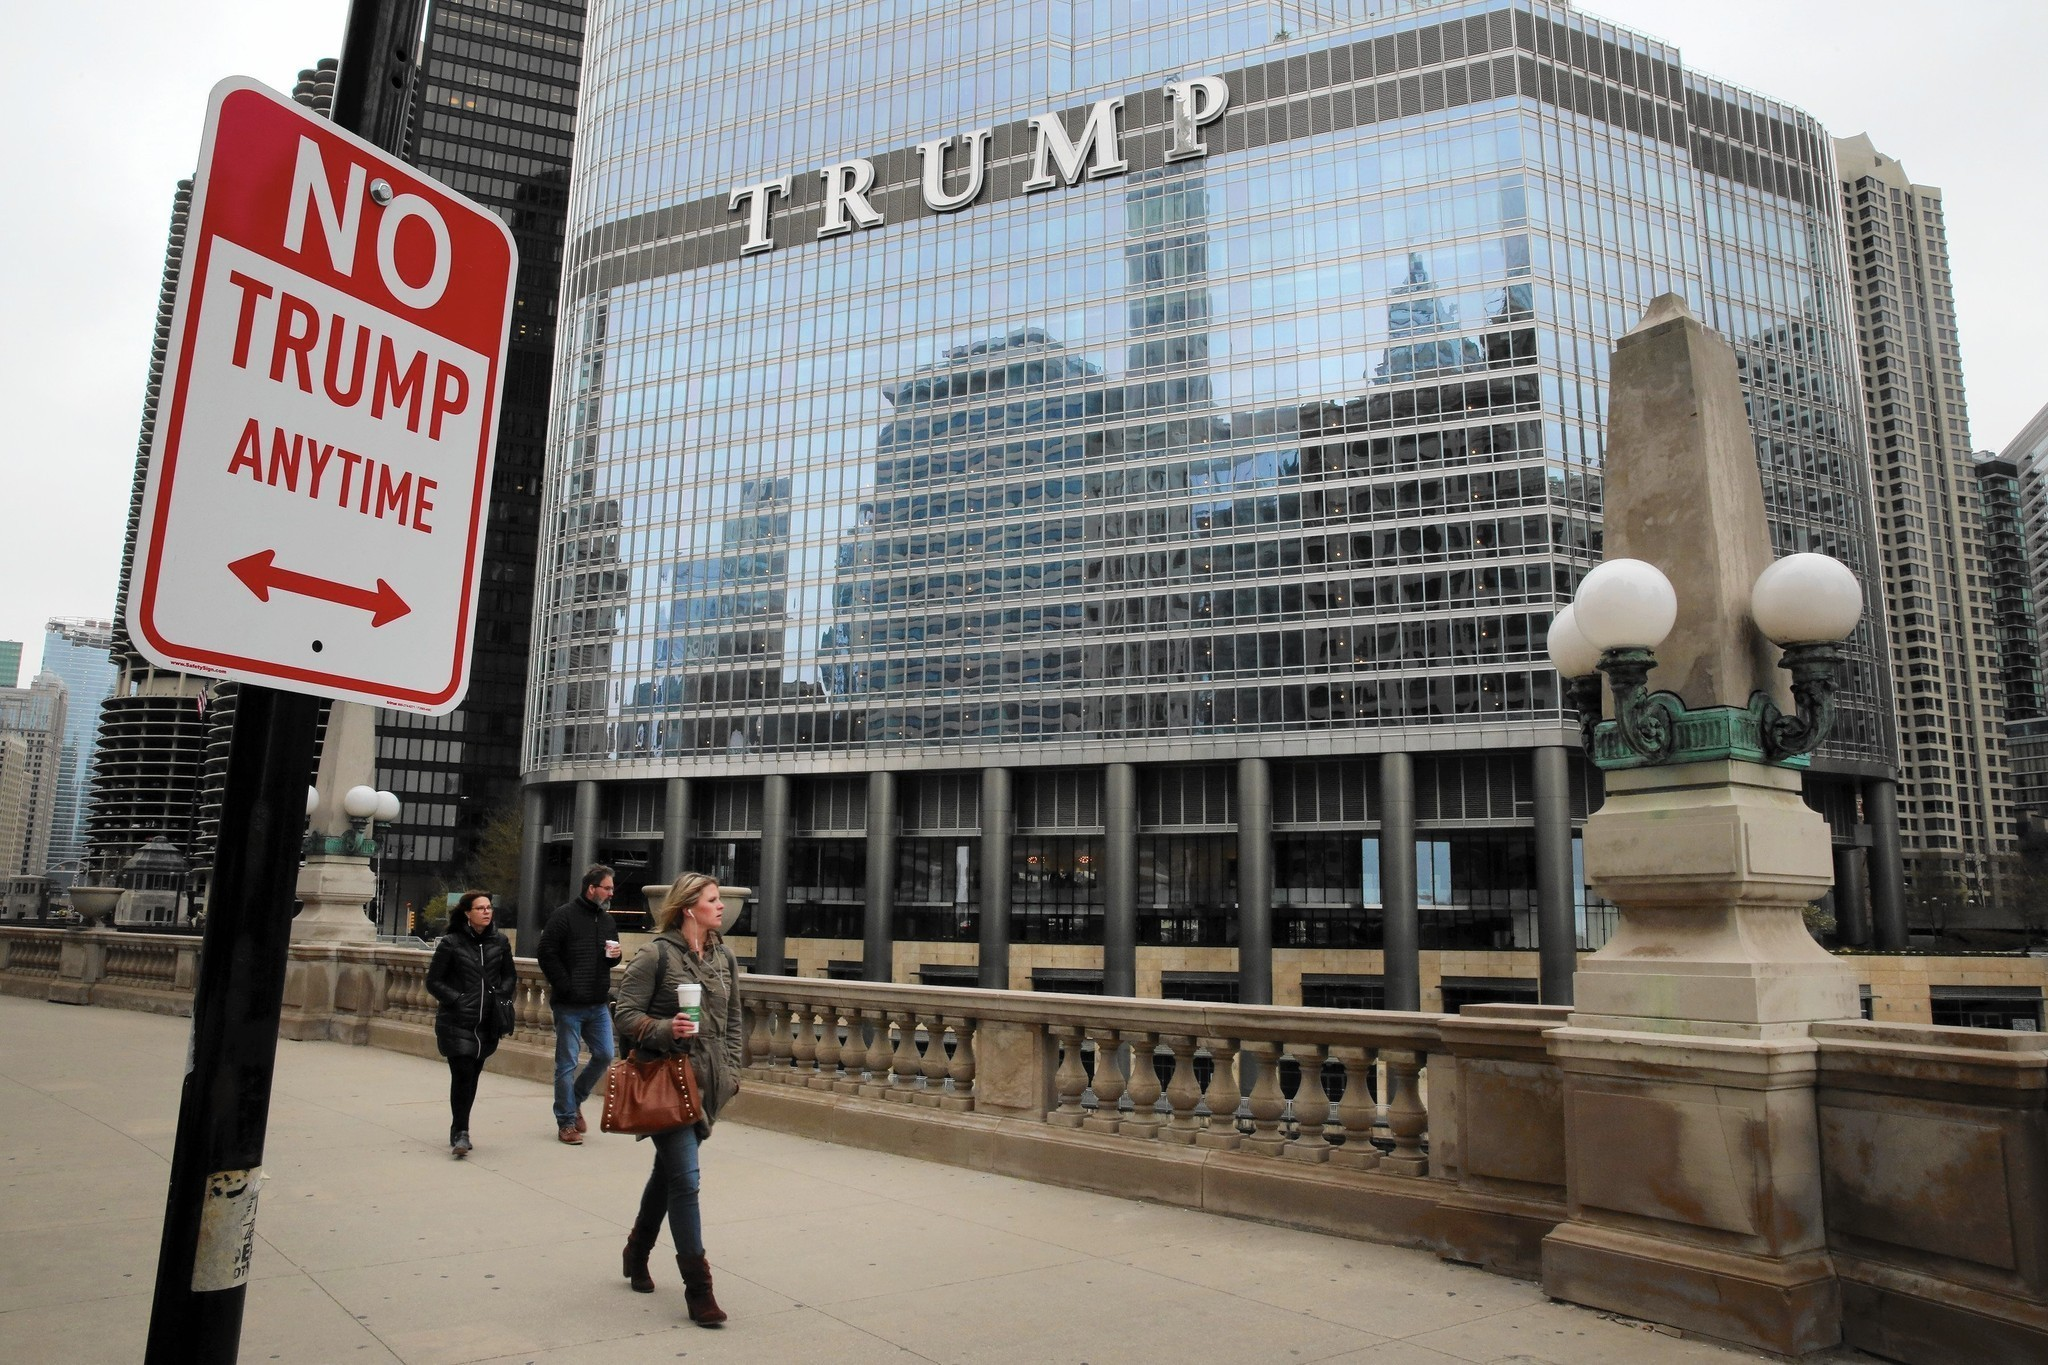 Public art takes it to the streets: 'No Trump Anytime' - Chicago ...